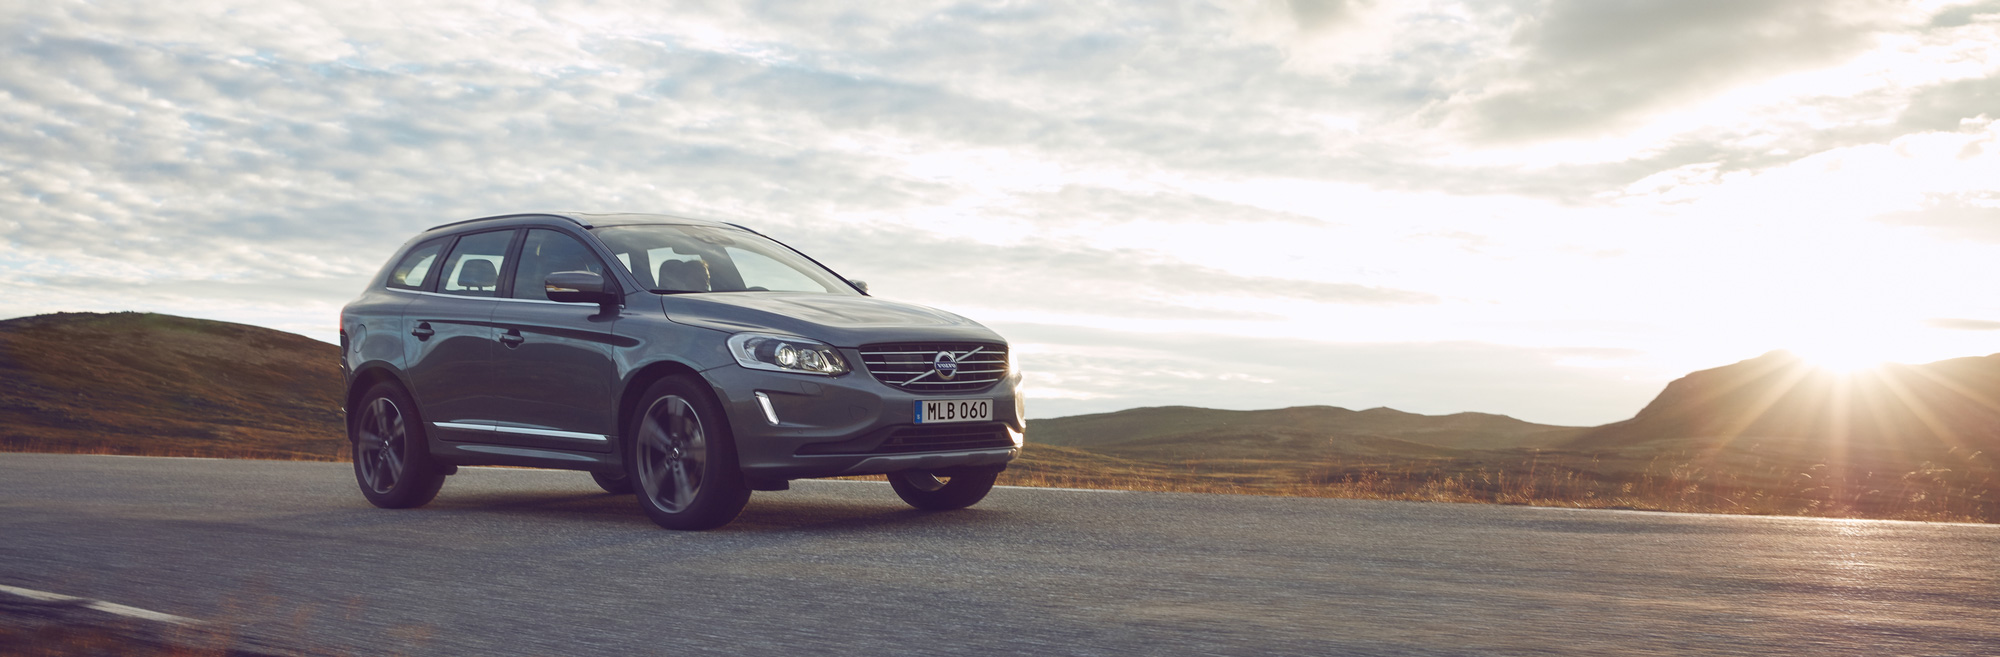 Volvo XC60 D3 Final Edition Leasingangebot